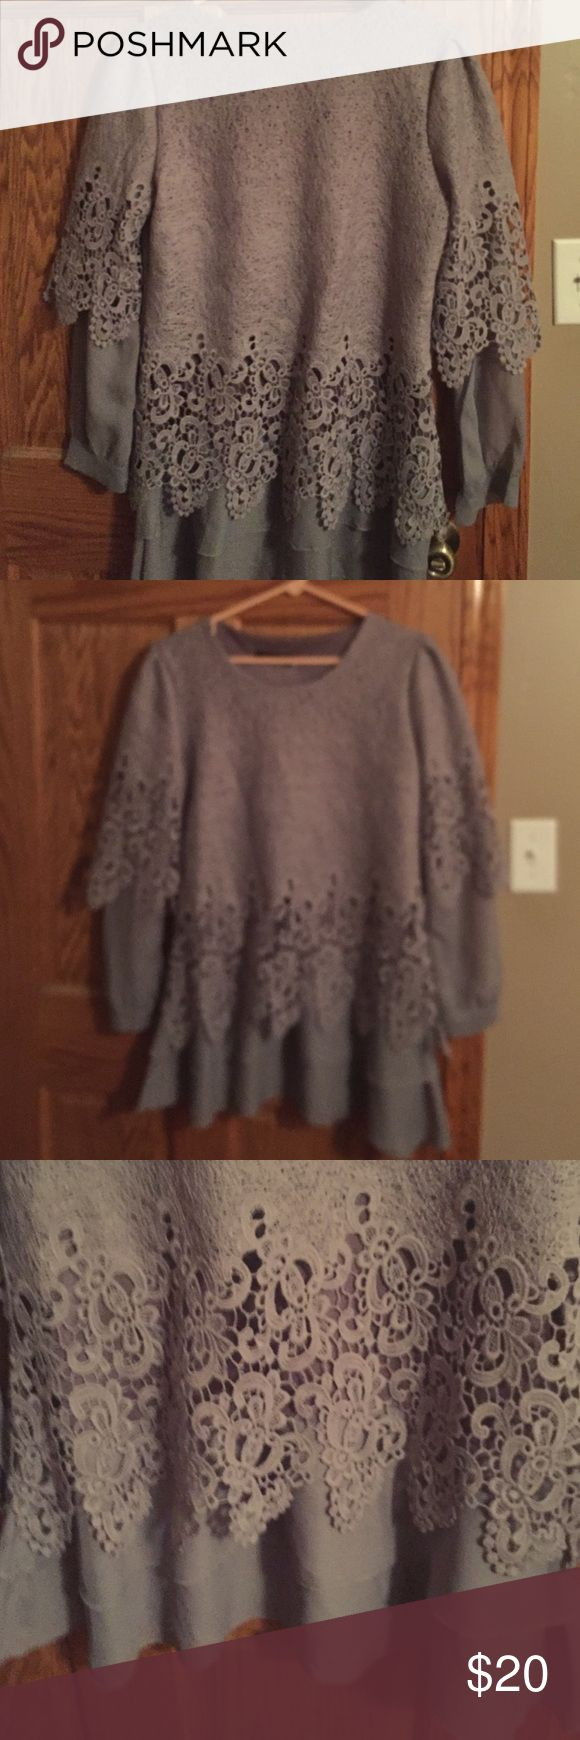 Gray lace with sheer sleeves blouse. Lace outer and sheer sleeves and flounce. Oriental company ( see pics). Says XXL but fits like an XL. New without tags Tops Blouses